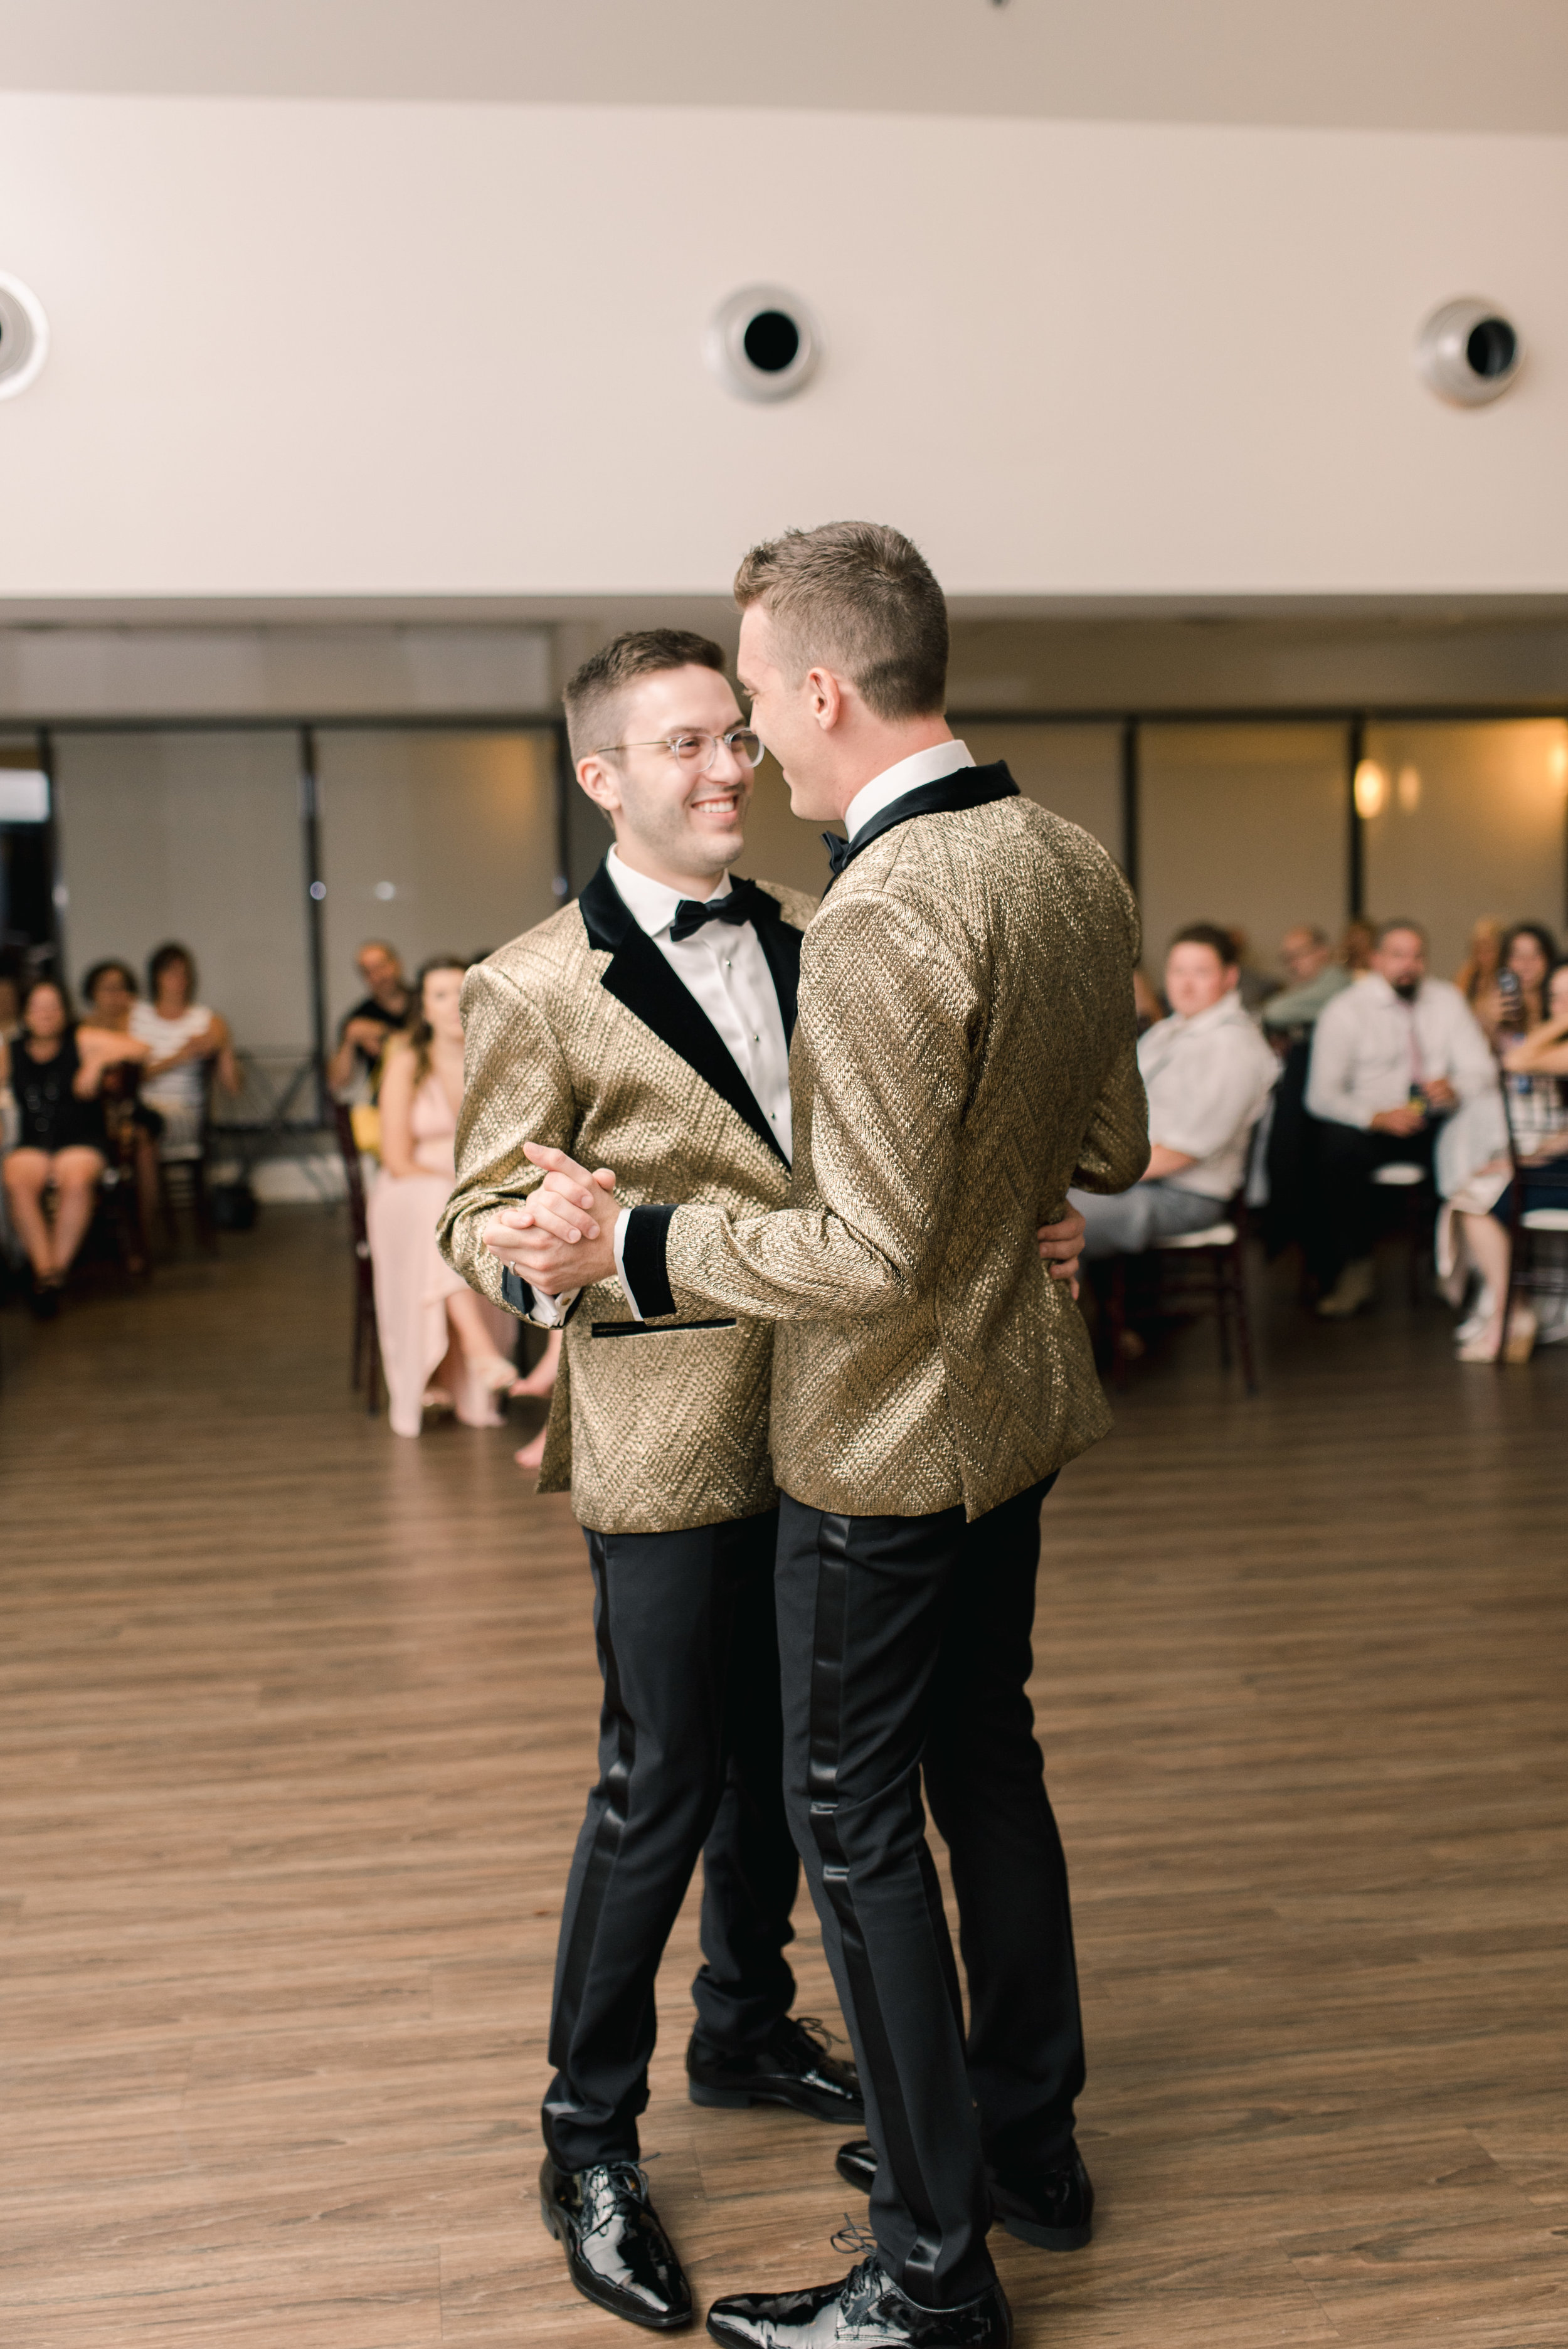 This romantic summer same-sex wedding in Hamilton, Ontario at the Dundas Valley Golf and Curling Club and McMaster University was nothing short of perfect. The classic, elegant, mixed metals styled wedding was captured by Hamilton Wedding Photographer Kayla Potter.